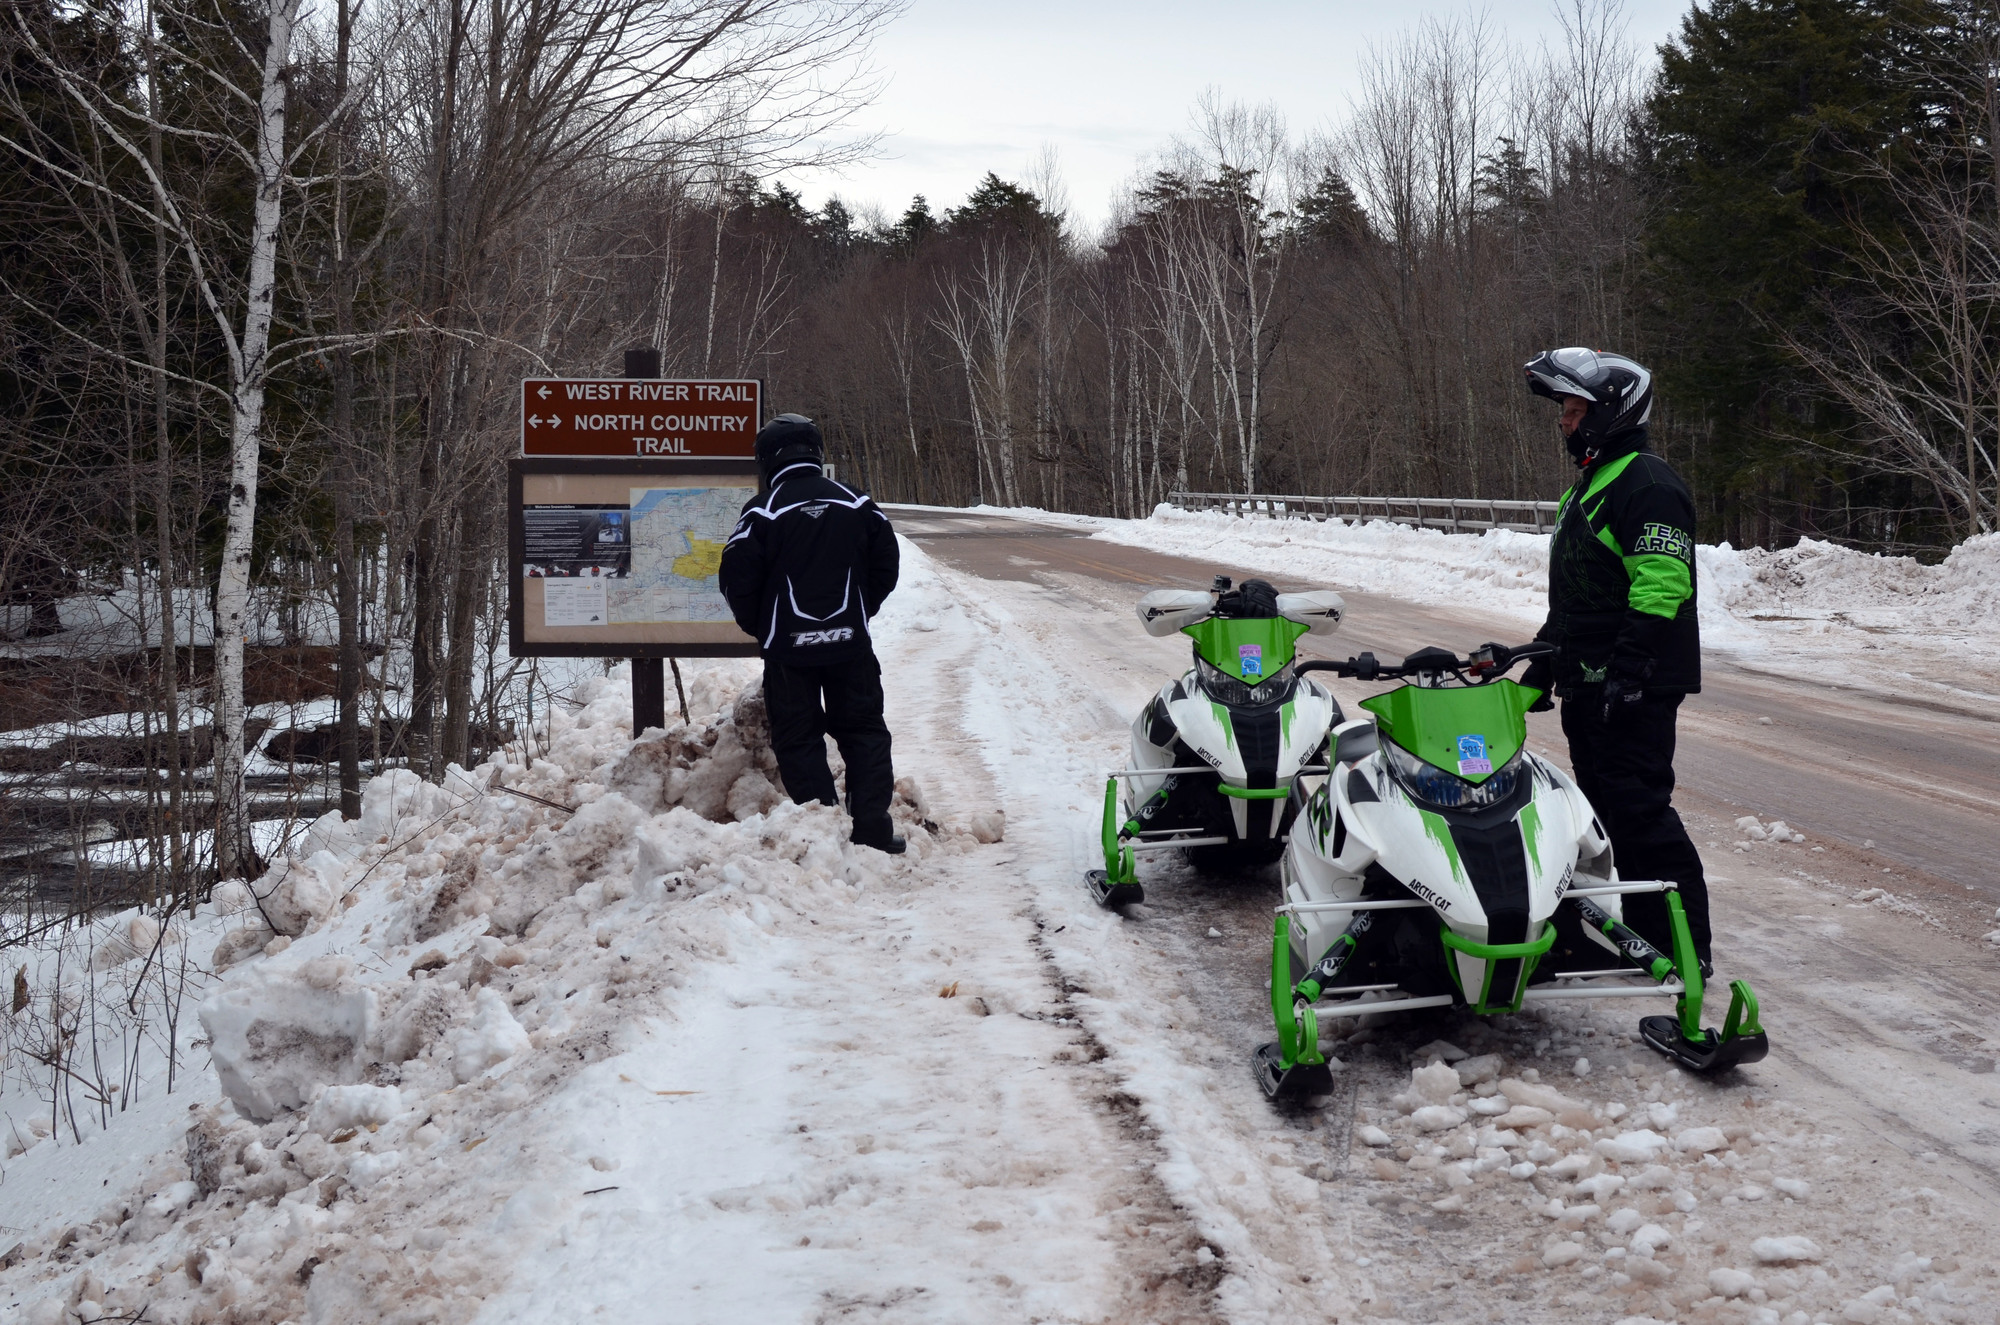 Snowmobilers stop to look at a trail map along the South Boundary Road at Porcupine Mountains Wilderness State Park in Gogebic County.